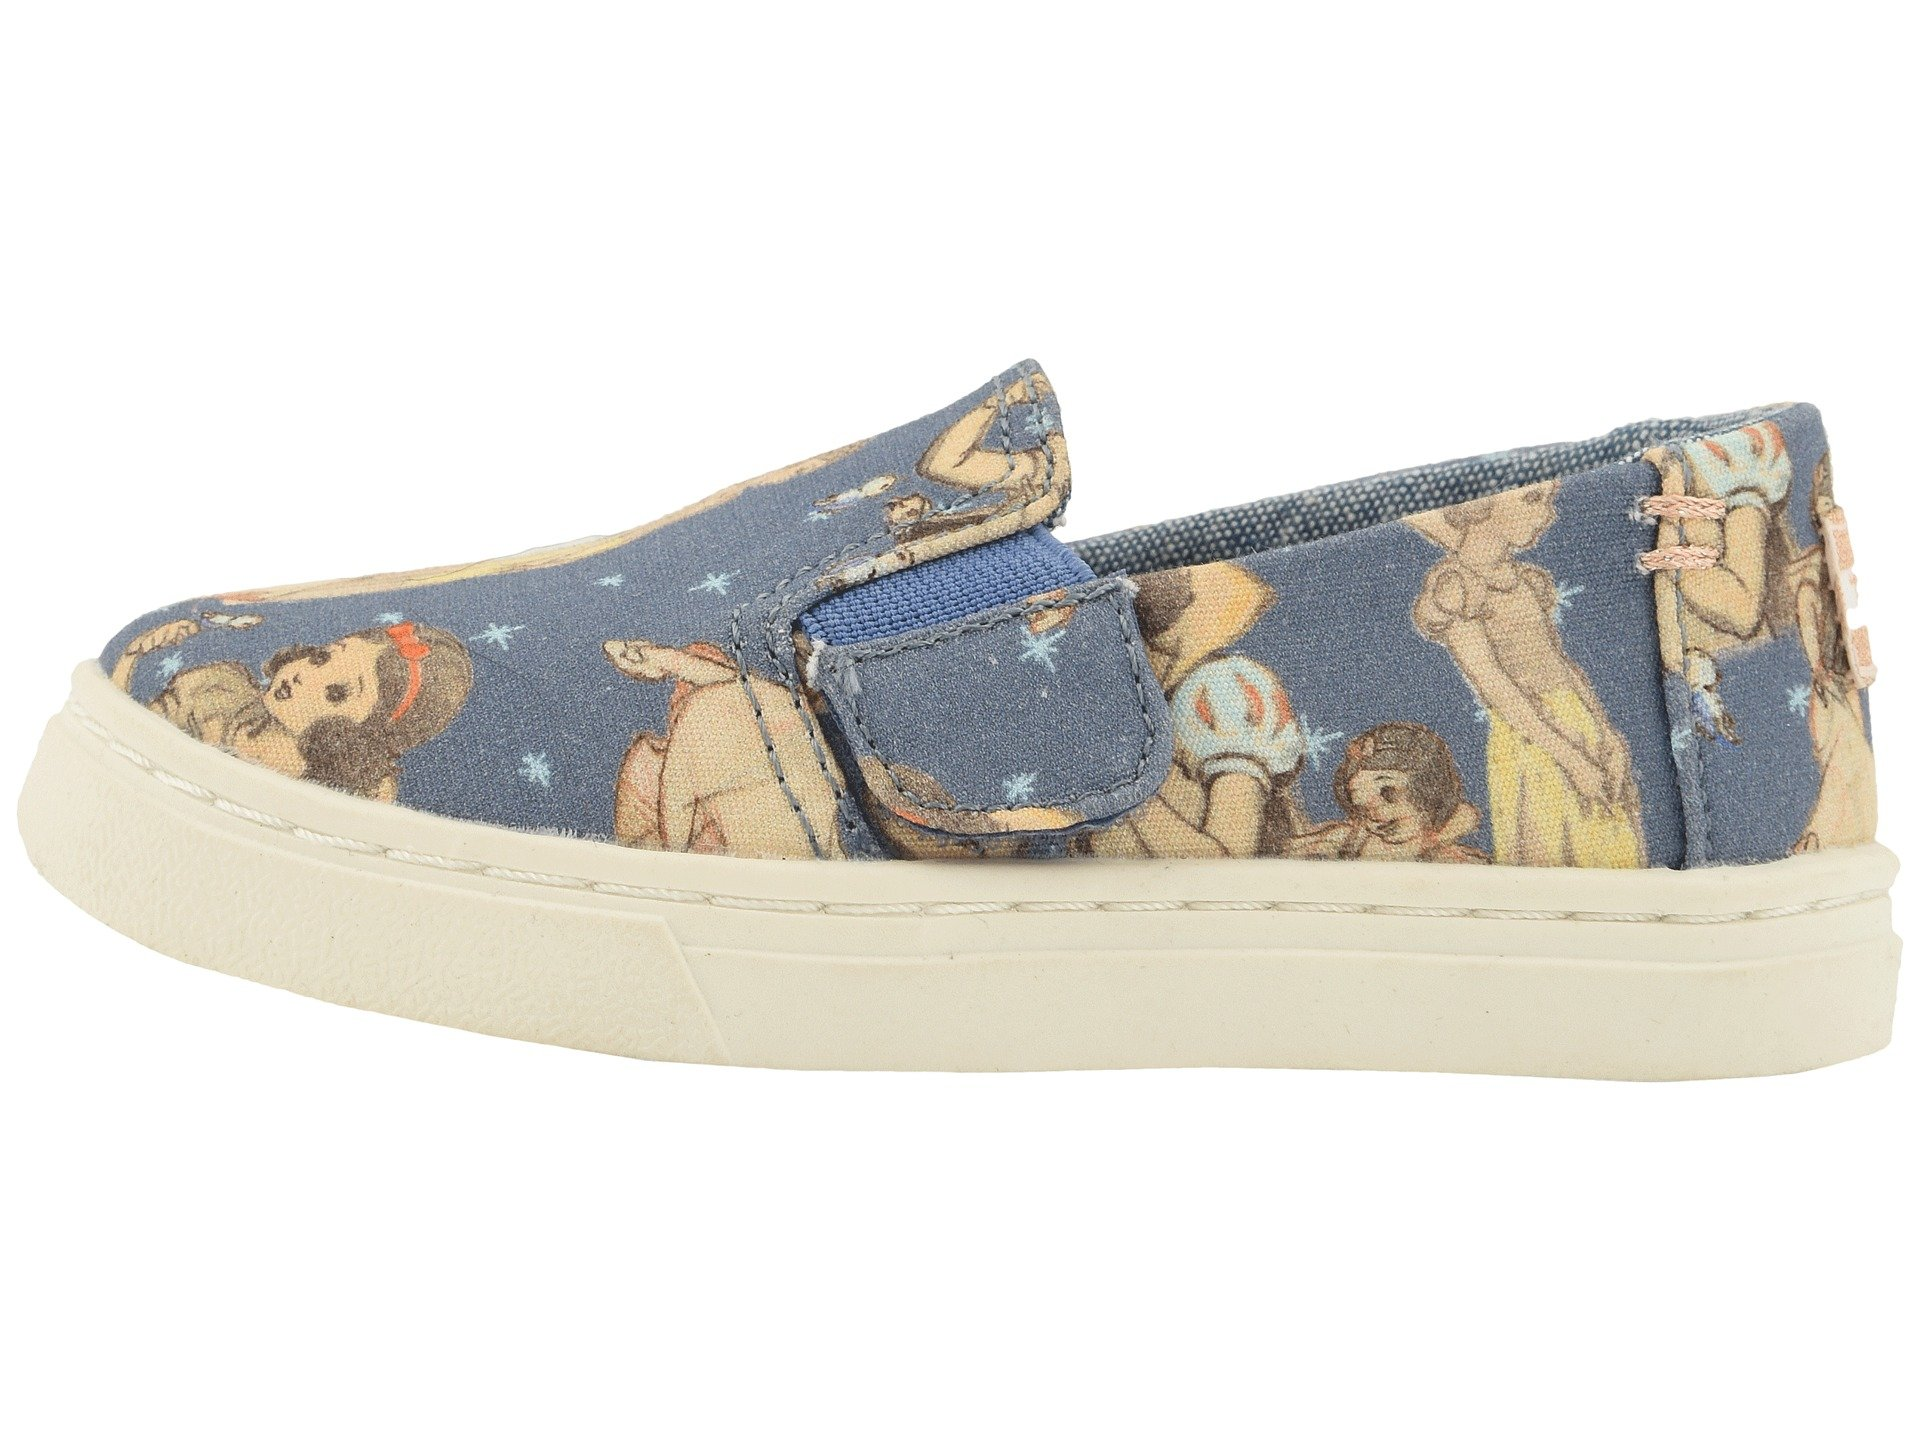 TOMS Girl's, Luca Slip on Shoes Blue 4 M by TOMS Kids (Image #6)